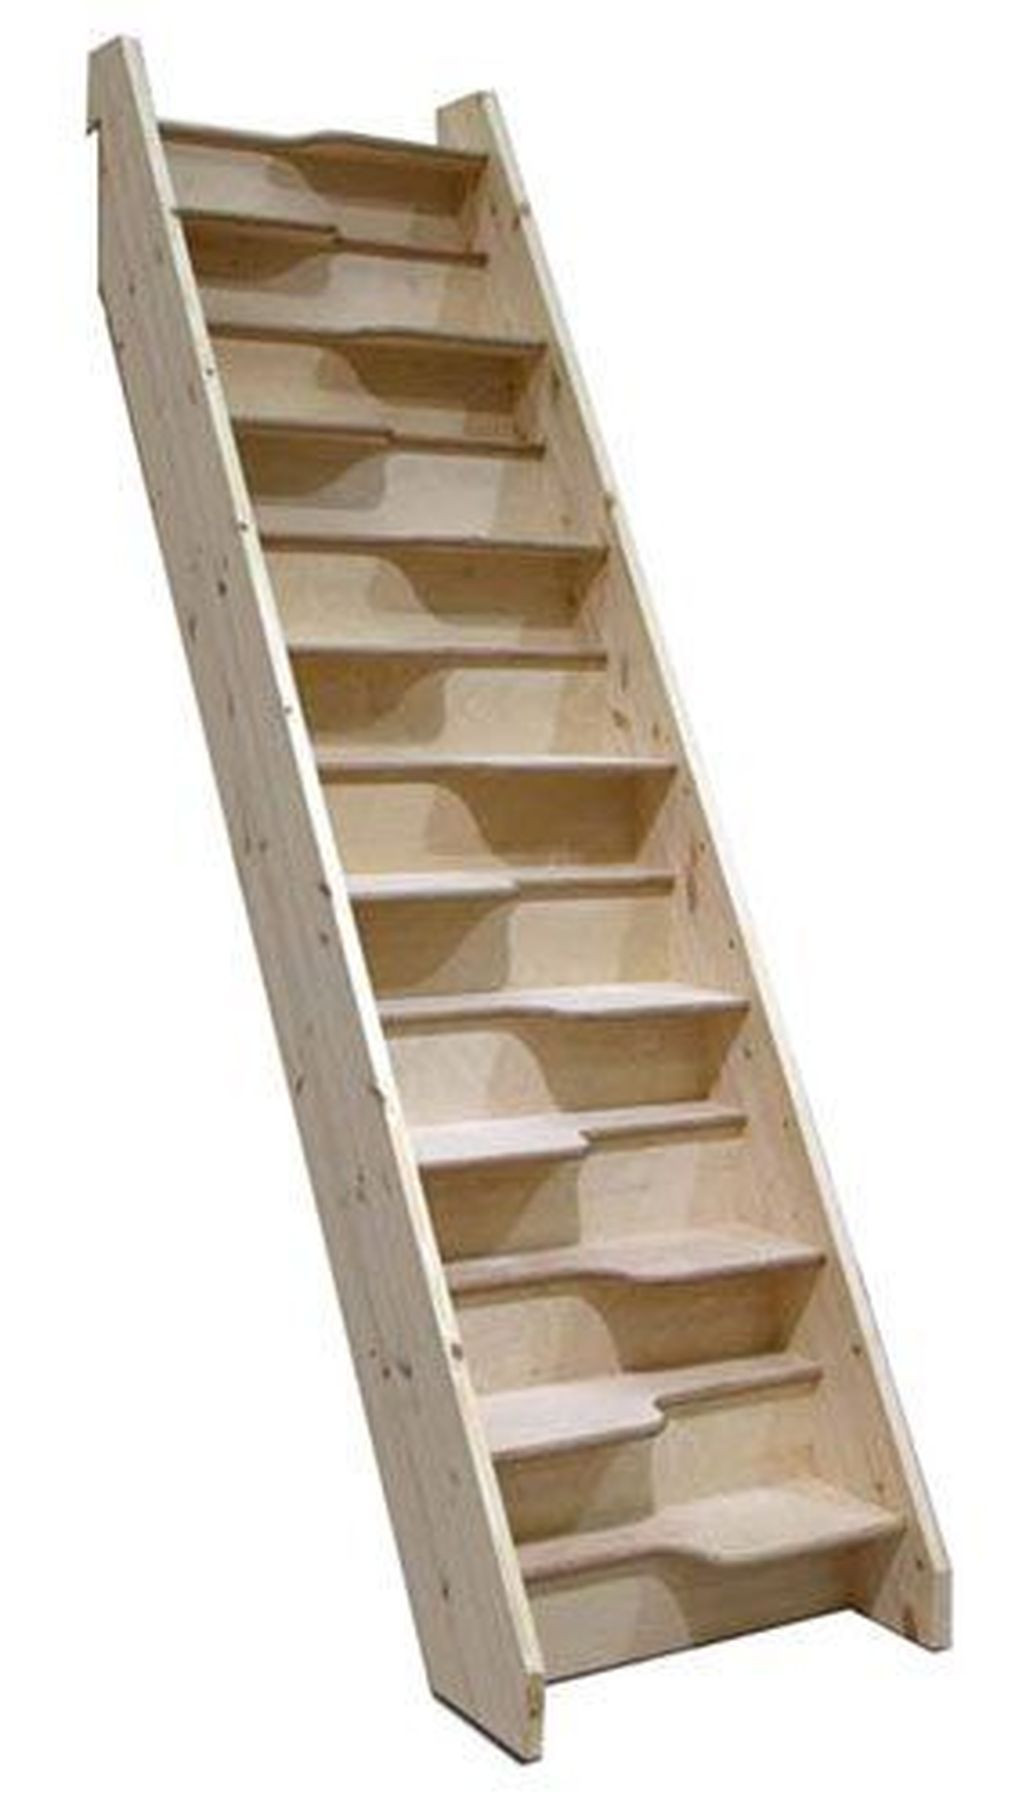 Designing Stairs for the attic 40 Magnificient Options for Designing Stairs for the attic